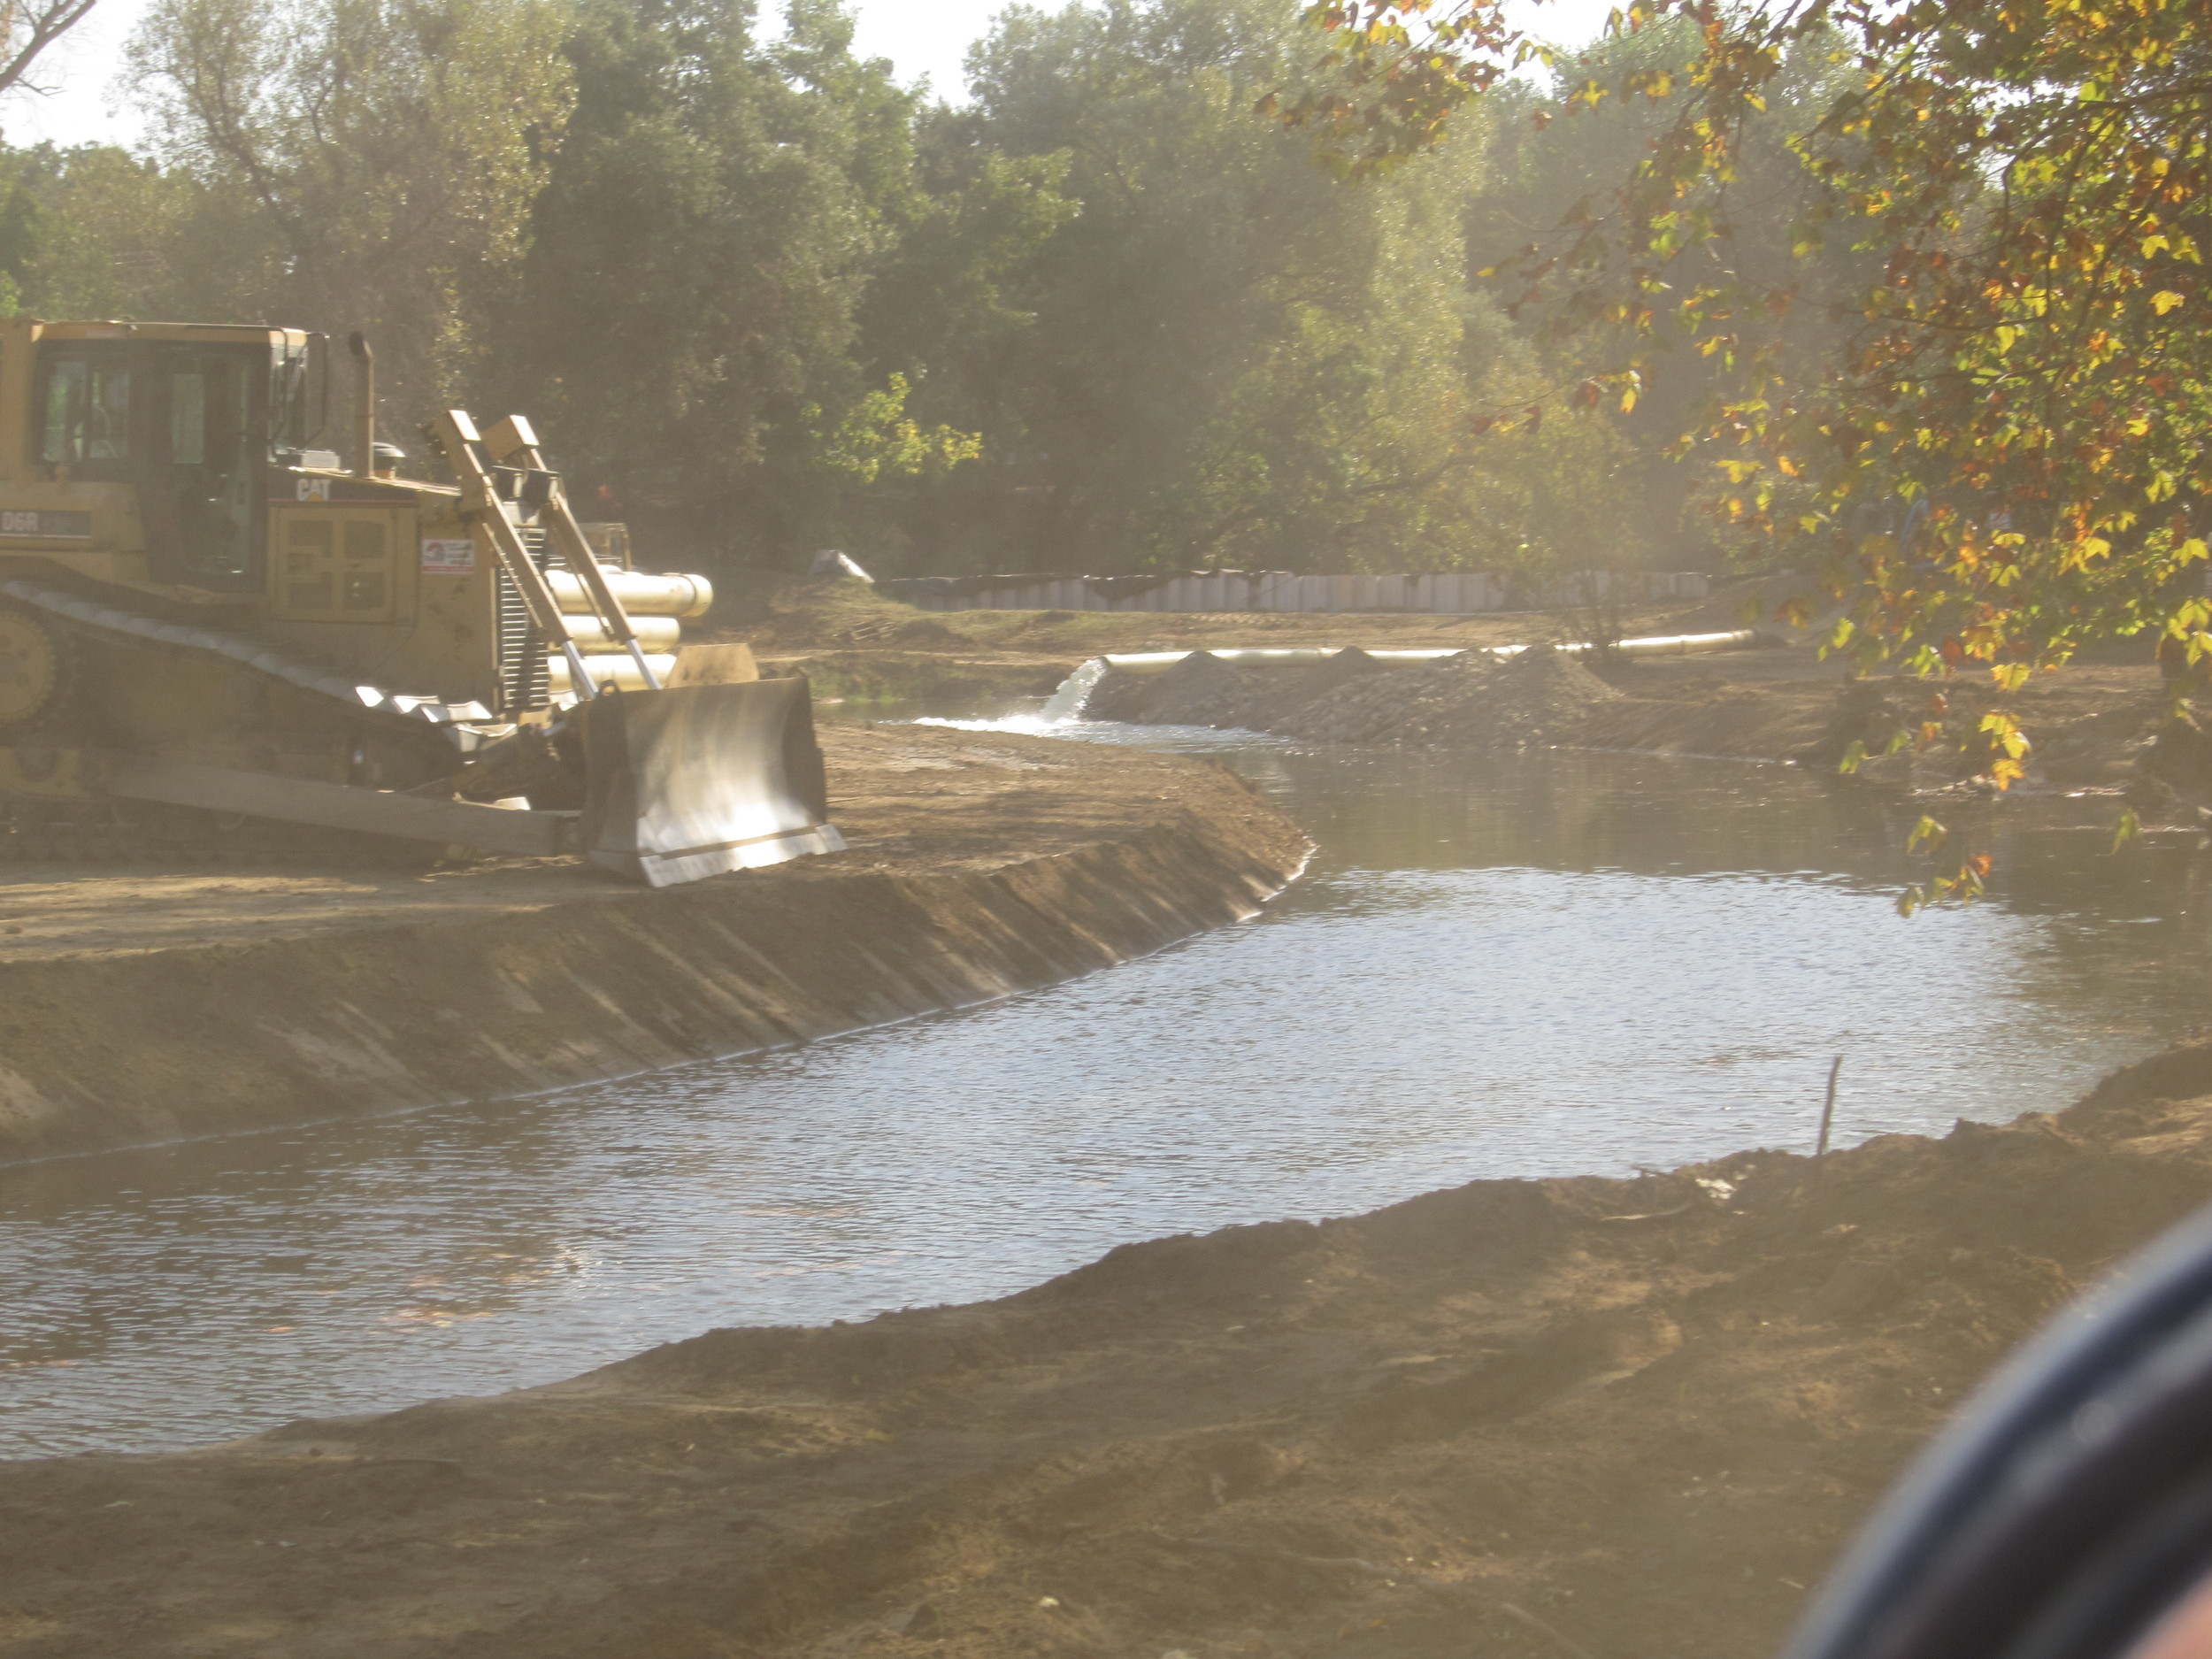 Preflooding of new channel before removal of cofferdams and restoration of flow